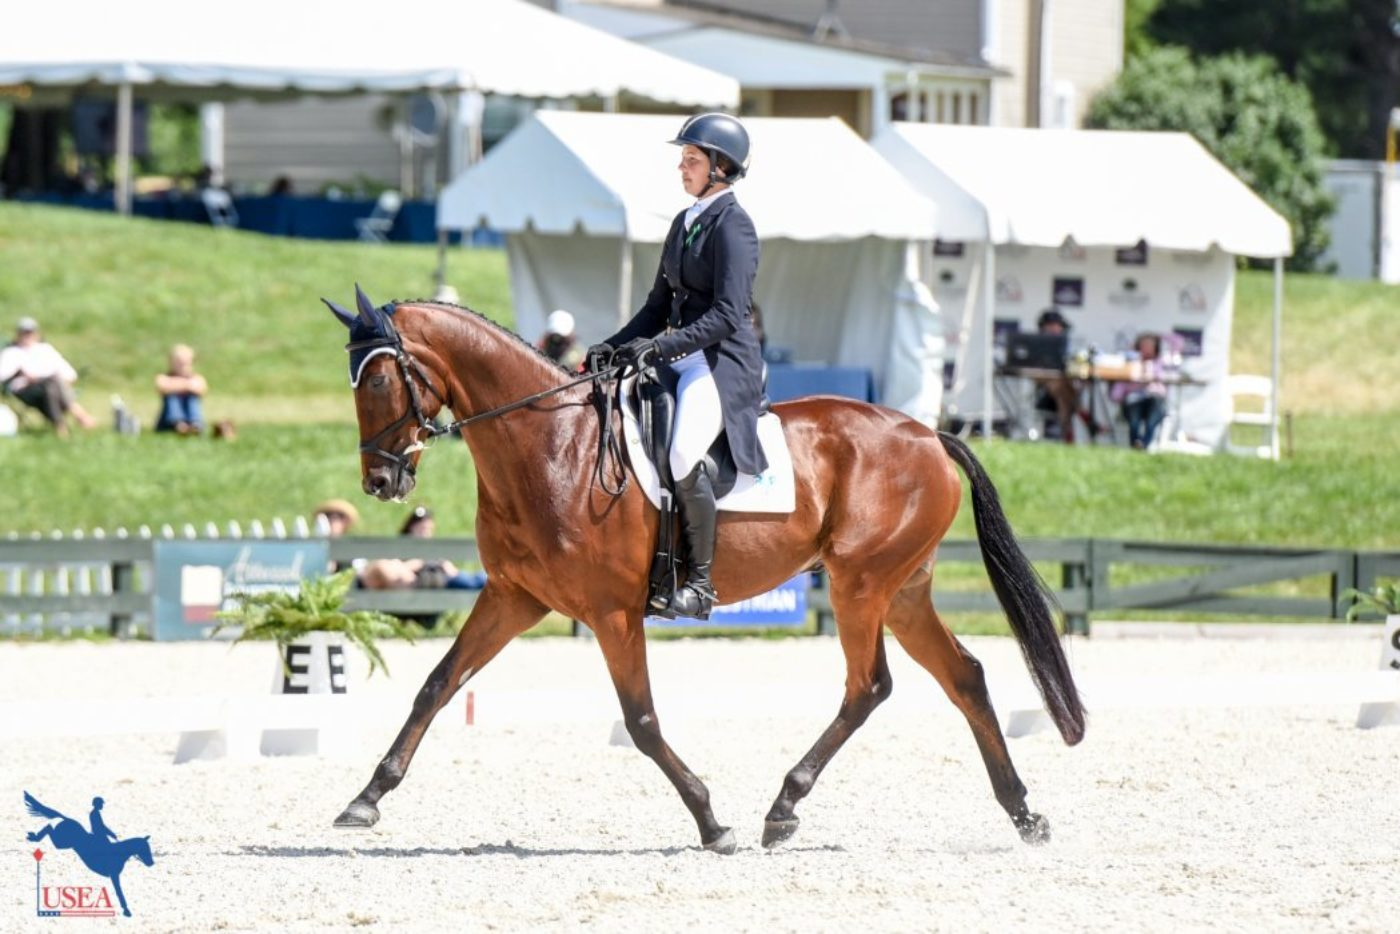 25th - Meghan O'Donoghue and Palm Crescent - 35.6